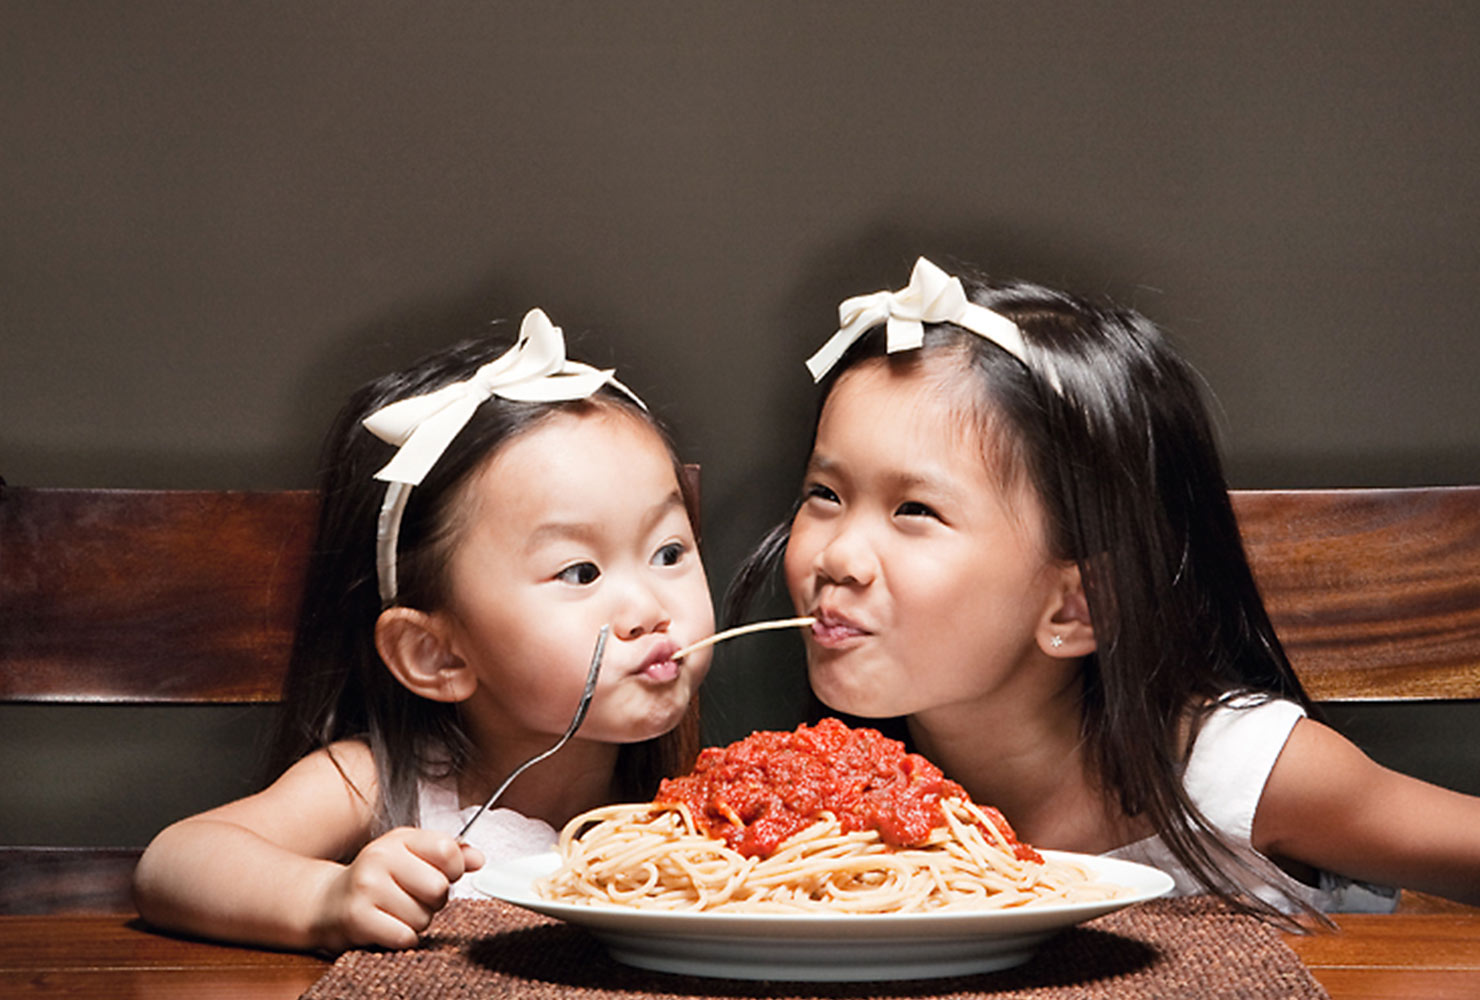 sibling photo ideas spaghetti girls